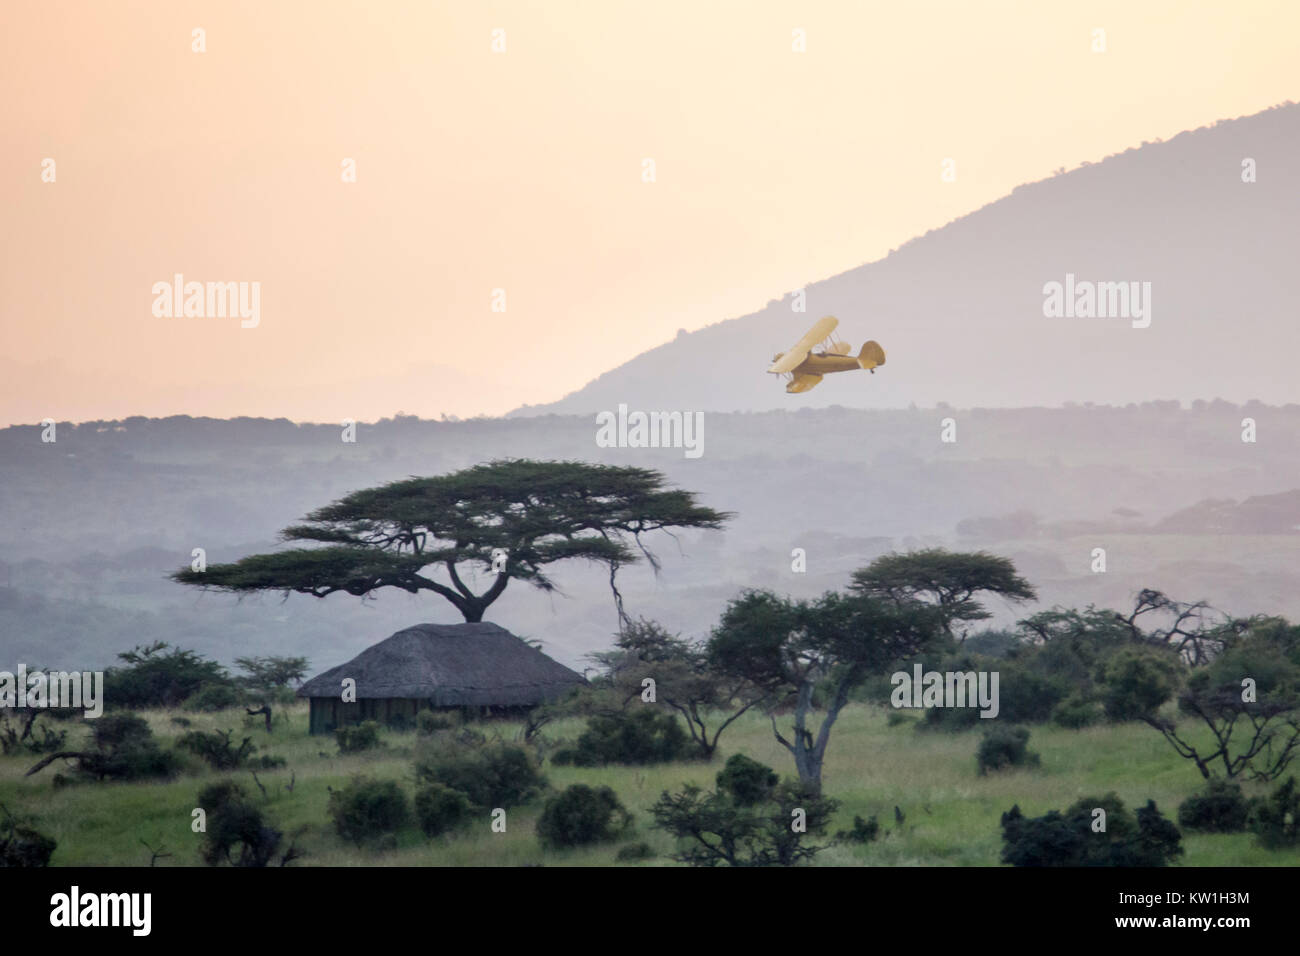 A 1930's Waco biplane flying at dawn over Laikipia, just above the land, Lewa Wilderness,Lewa Conservancy, Africa - Stock Image